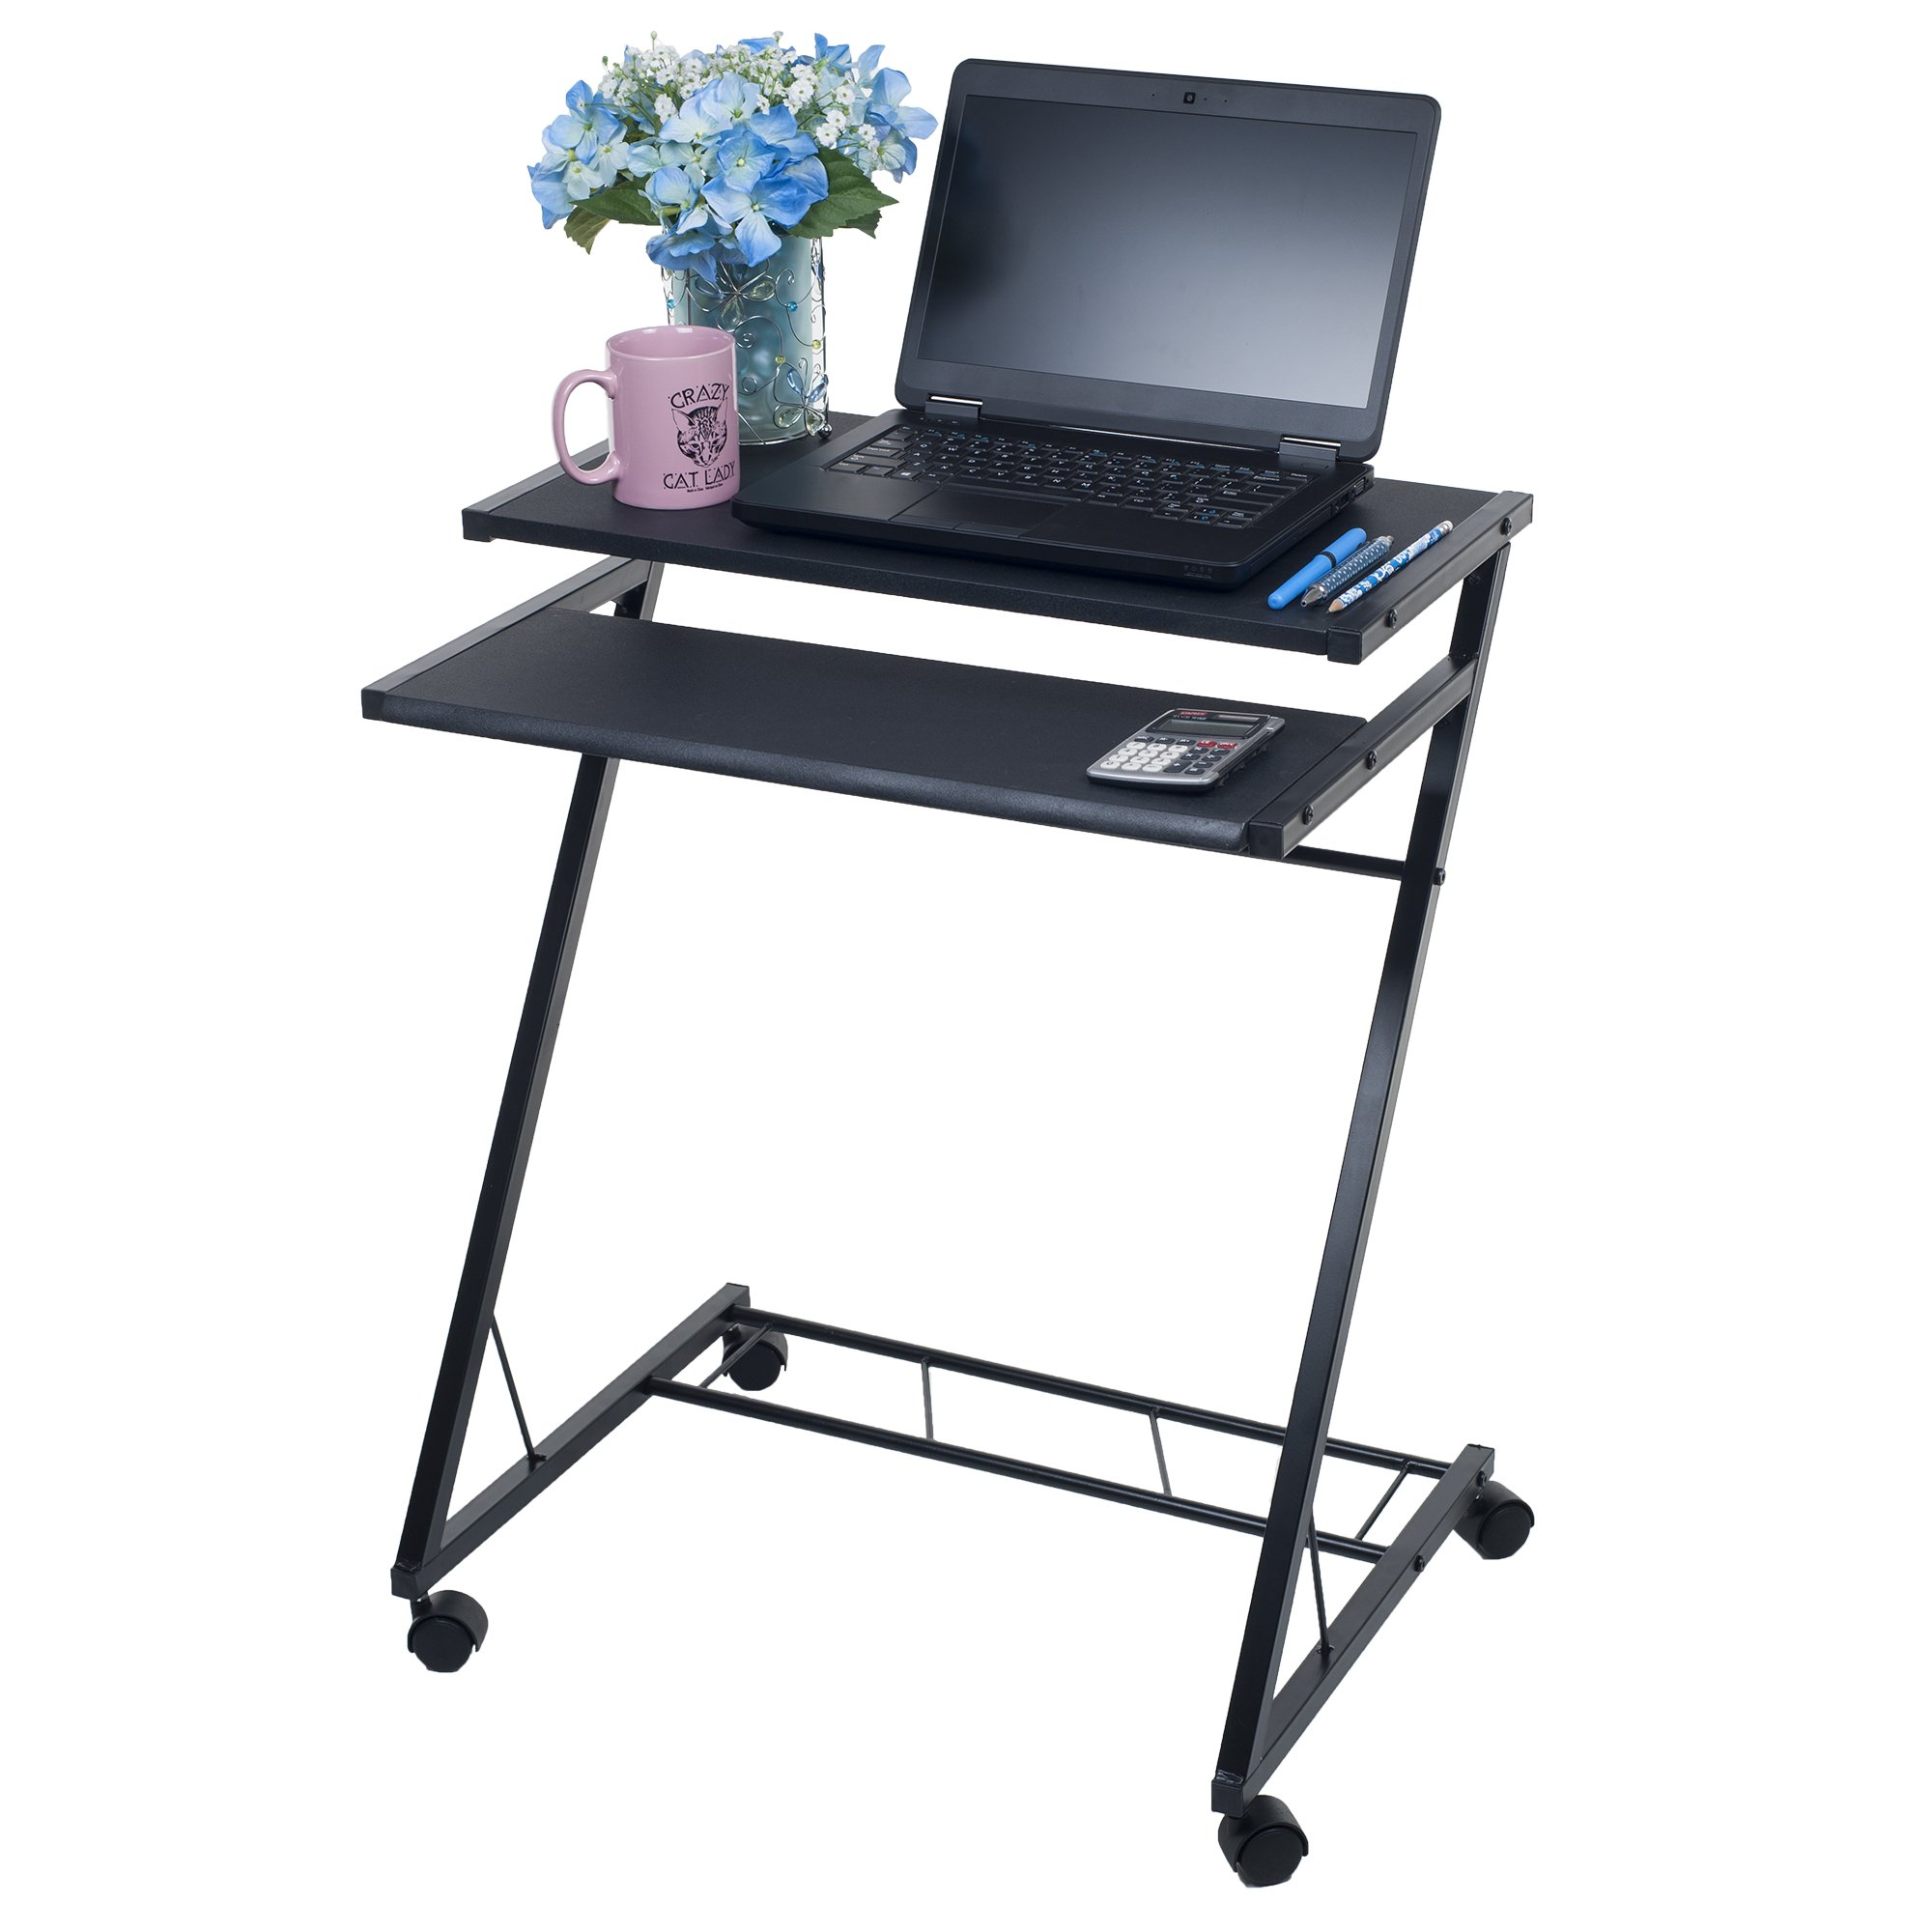 Lavish Home Mobile Rolling Cart Compact Computer Desk (80-CT10080) by Lavish Home